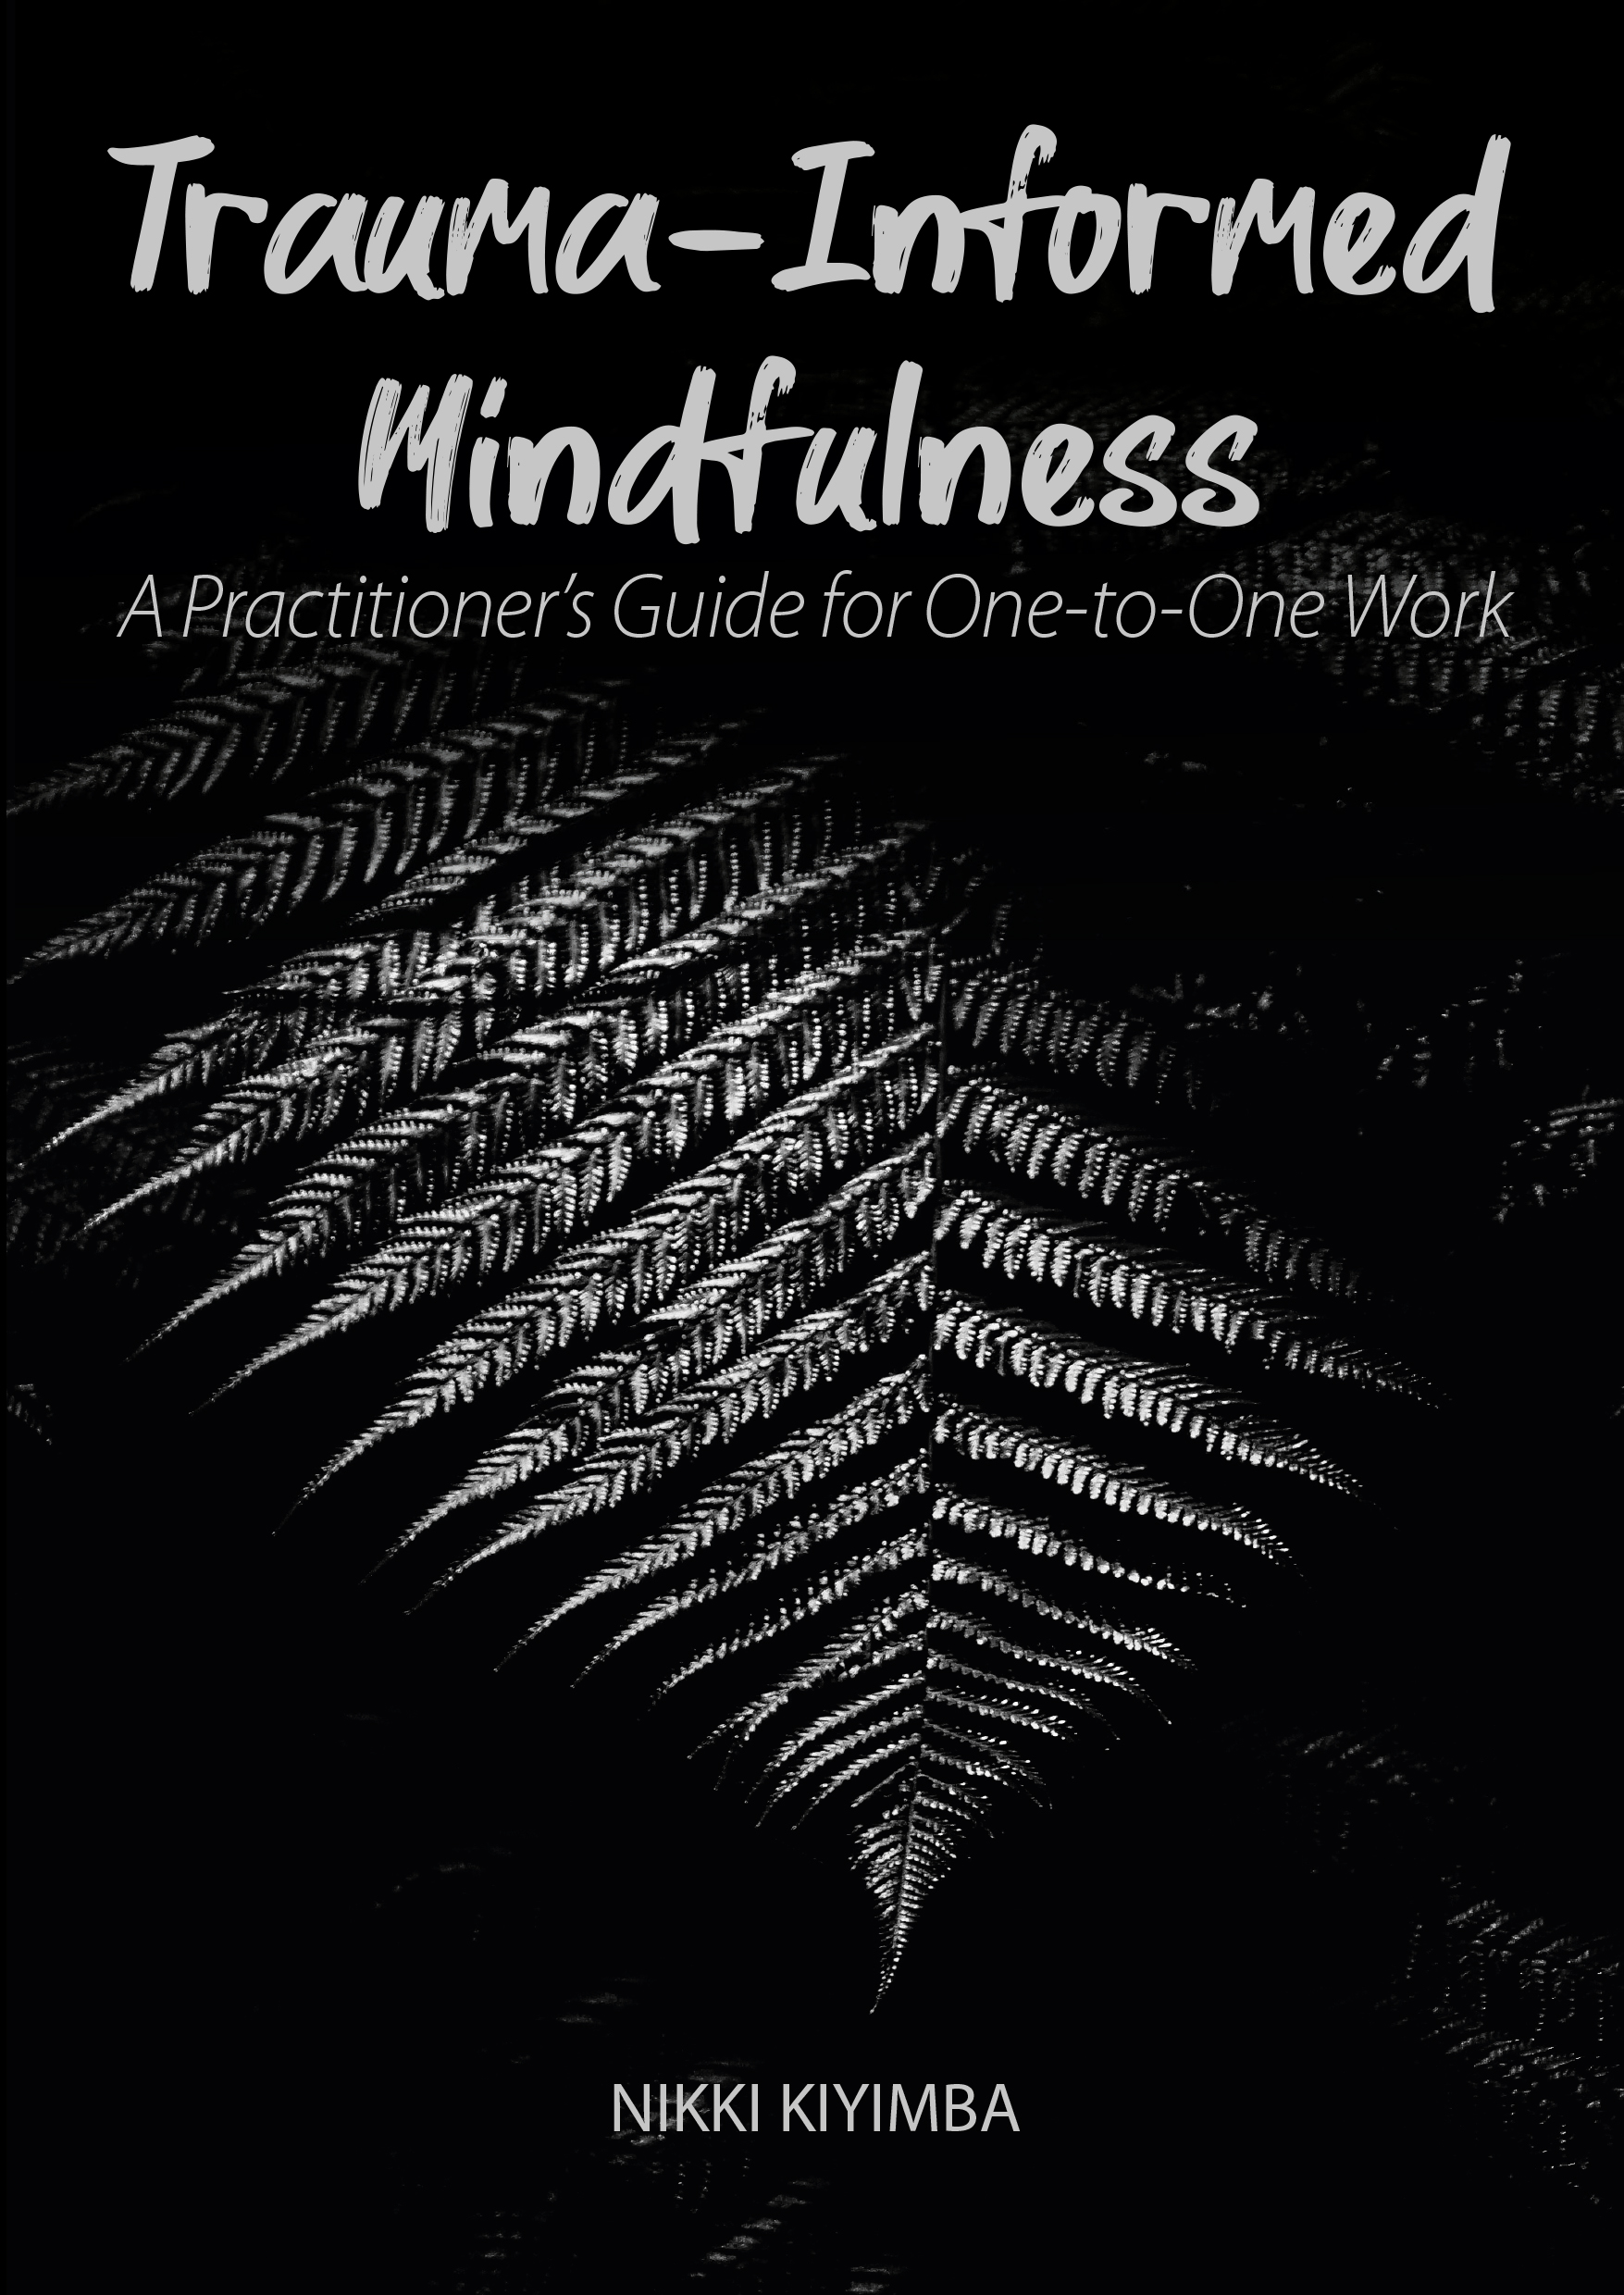 Trauma-Informed Mindfulness: A Practitioner's Guide for One-to-One Work